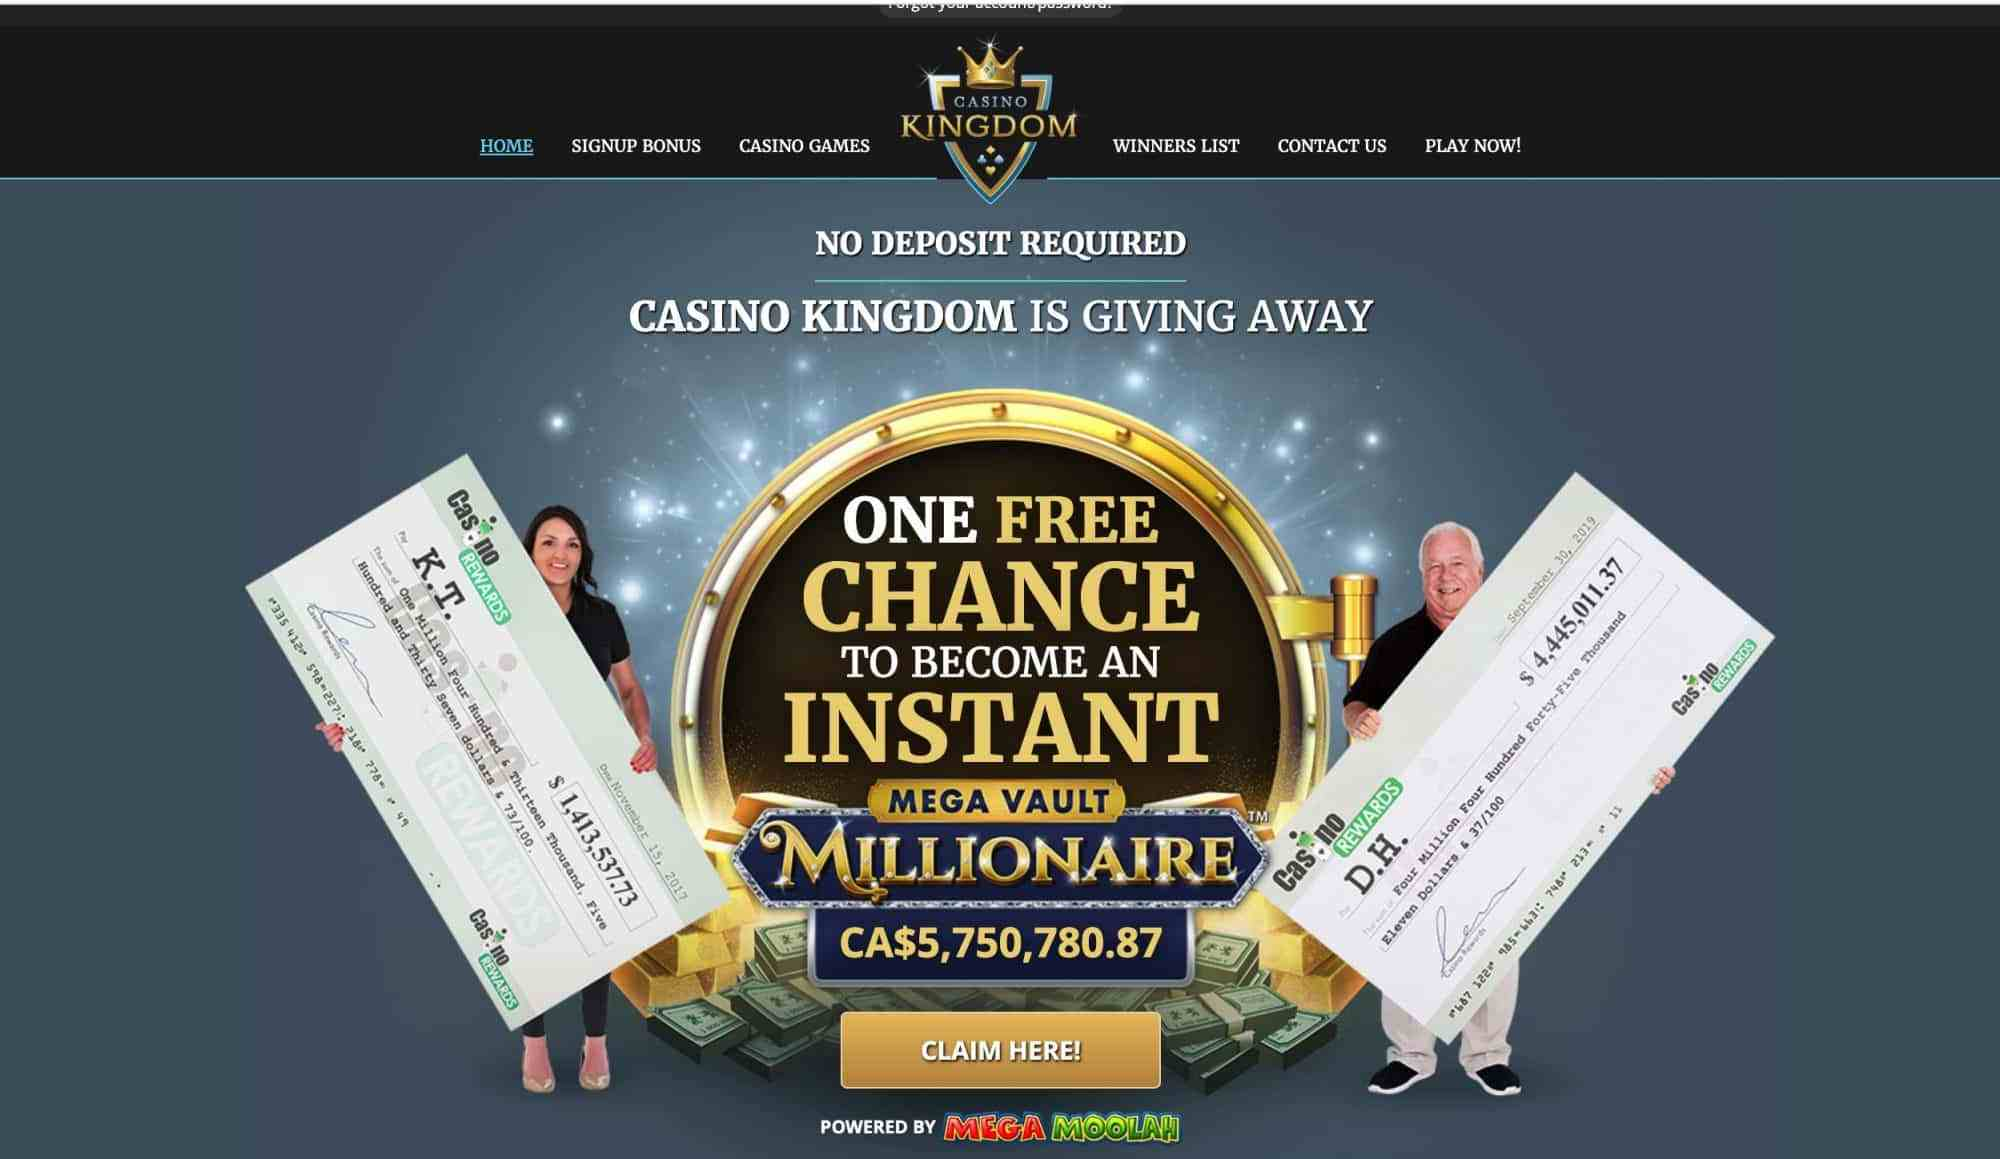 Casino Kingdom - A chance to be an instant millionaire!